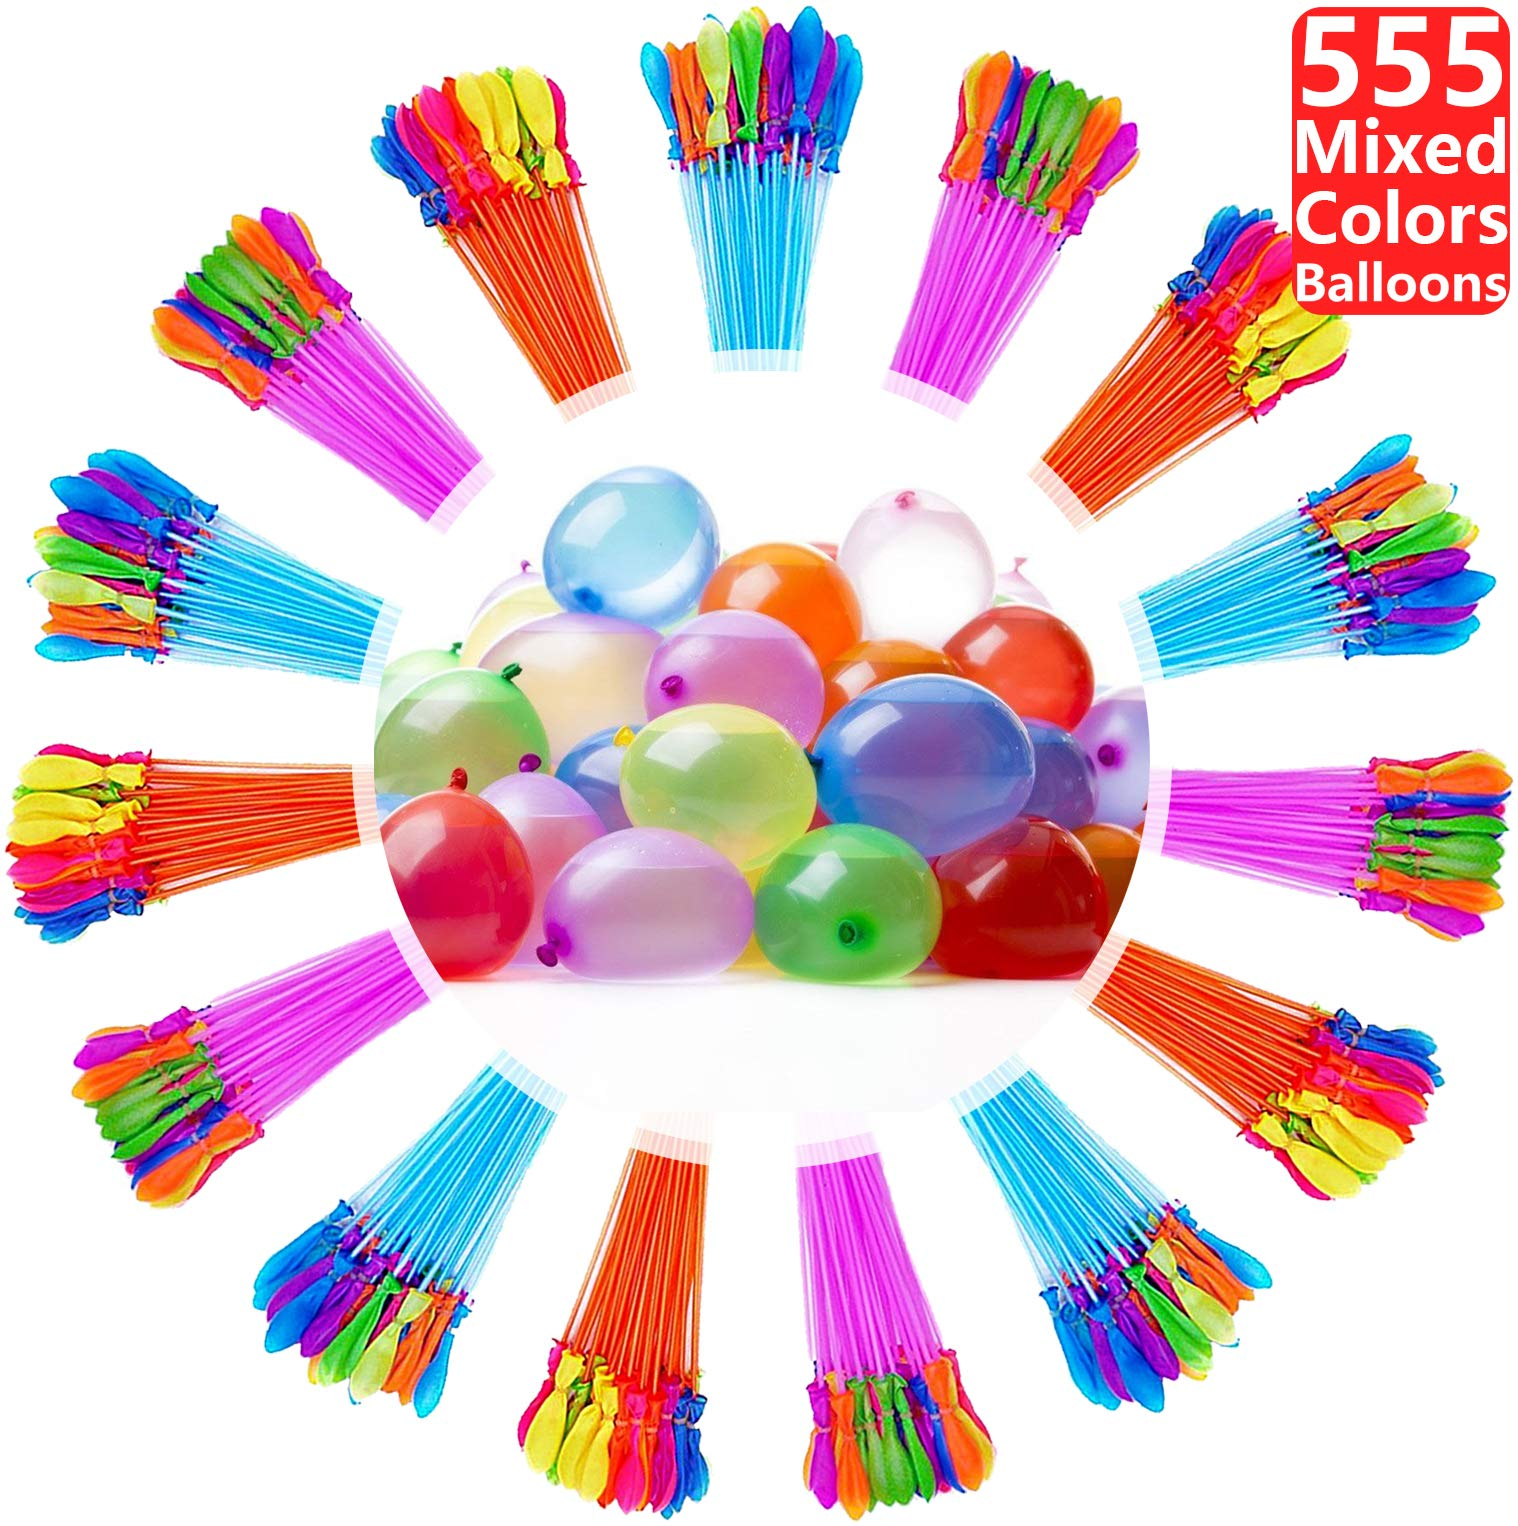 Water Balloons for Kids Girls Boys Balloons Set Party Games Quick Fill Water Balloons 555 Bunches Swimming Pool Outdoor Summer Fun V43